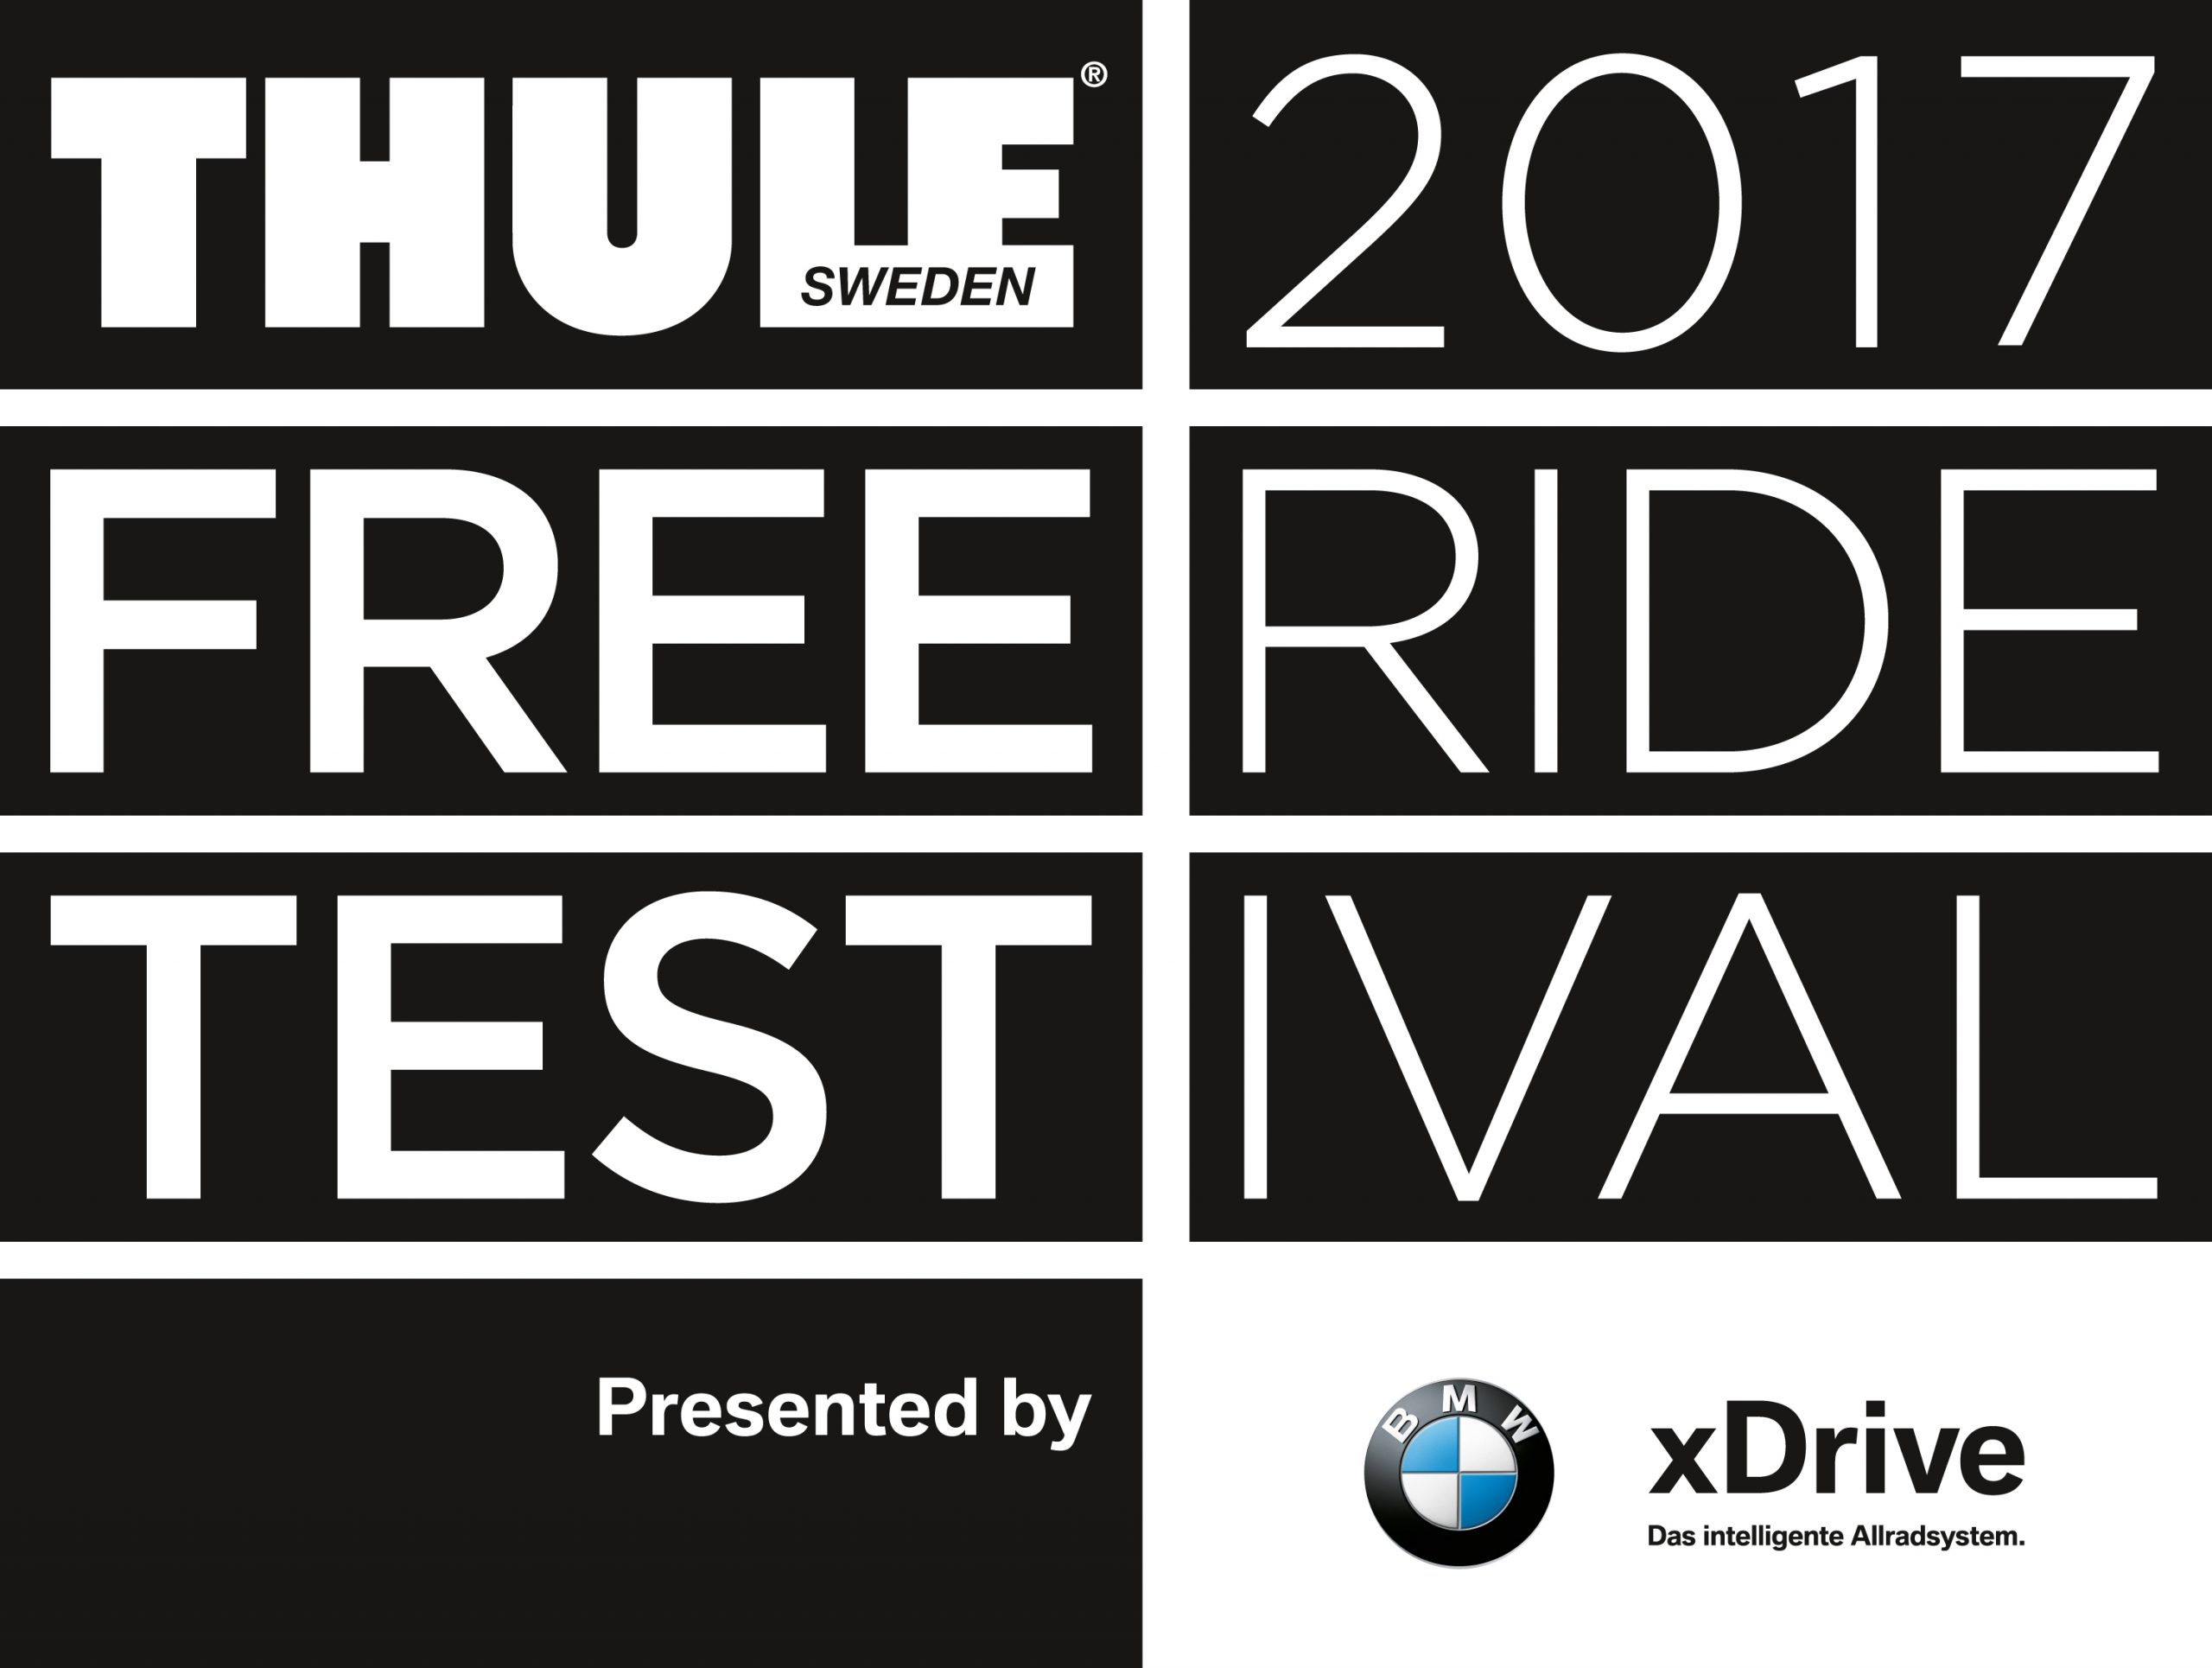 Logo THULE FreerideTestival presented by BMW xDrive